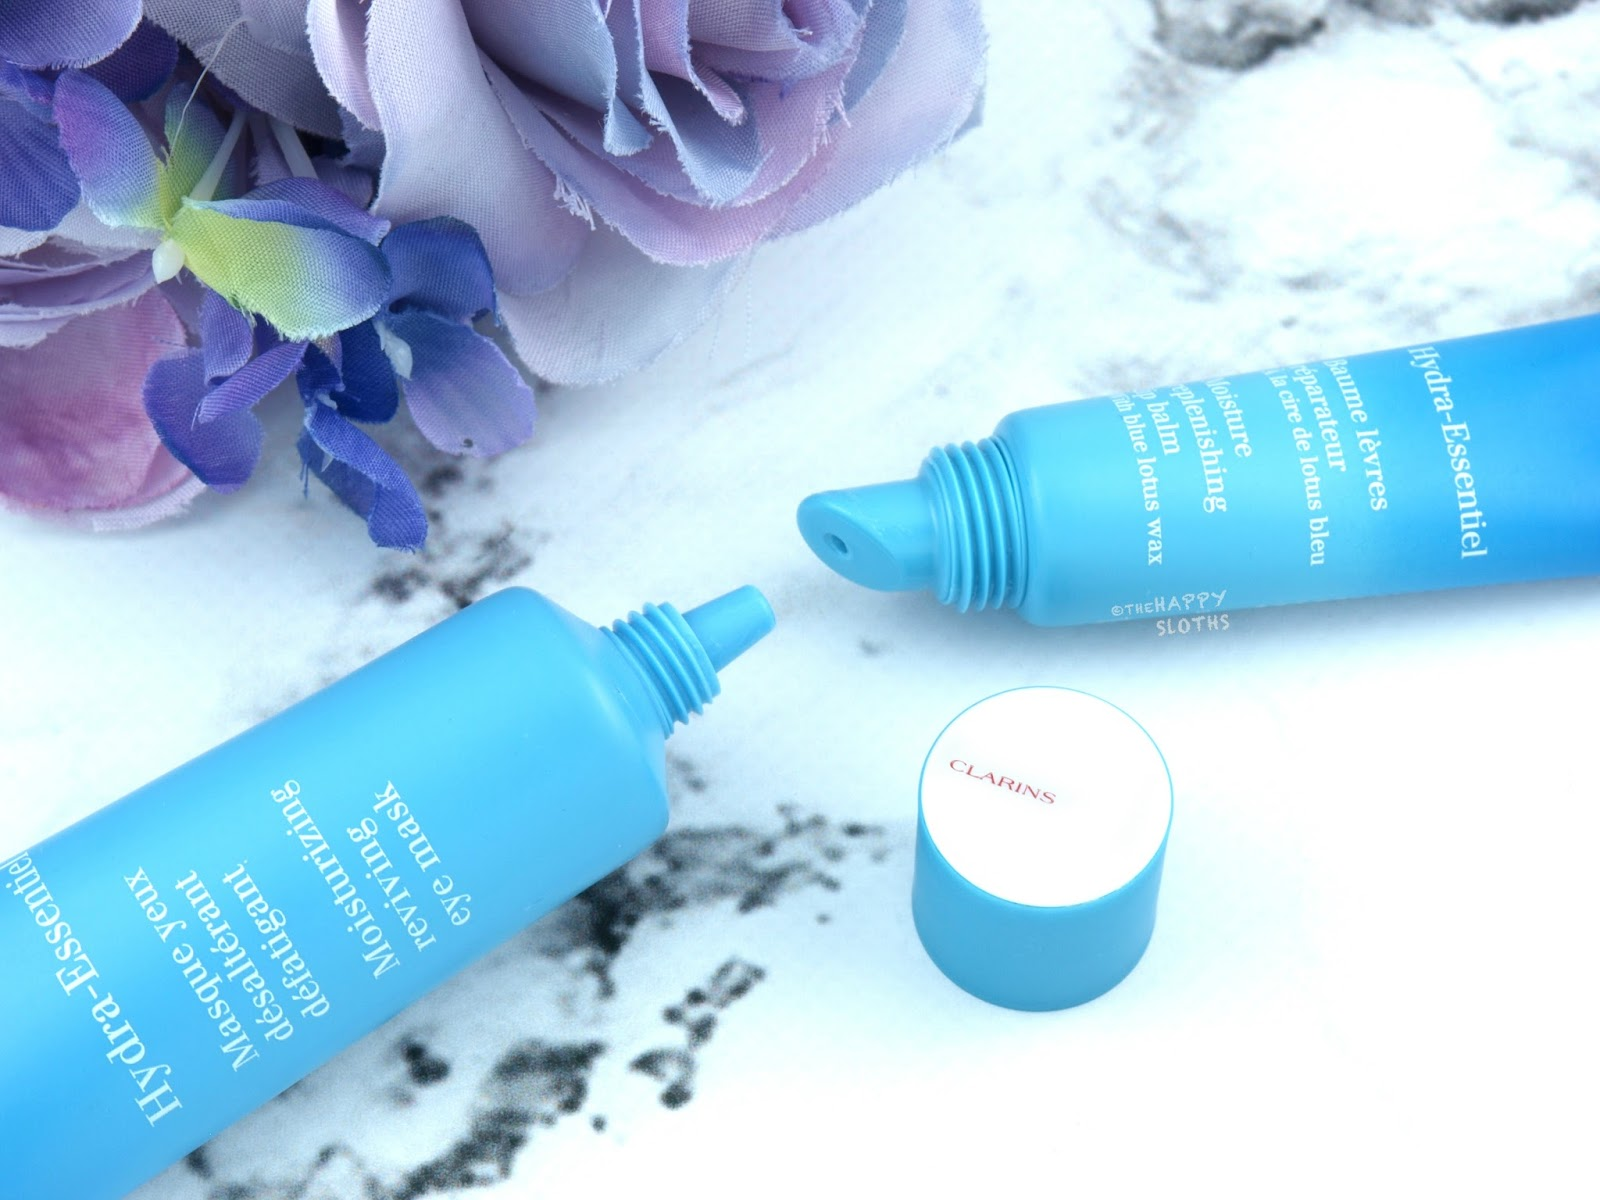 Clarins | Hydra-Essentiel Moisturizing Reviving Eye Mask & Moisture Replenishing Lip Balm: Review